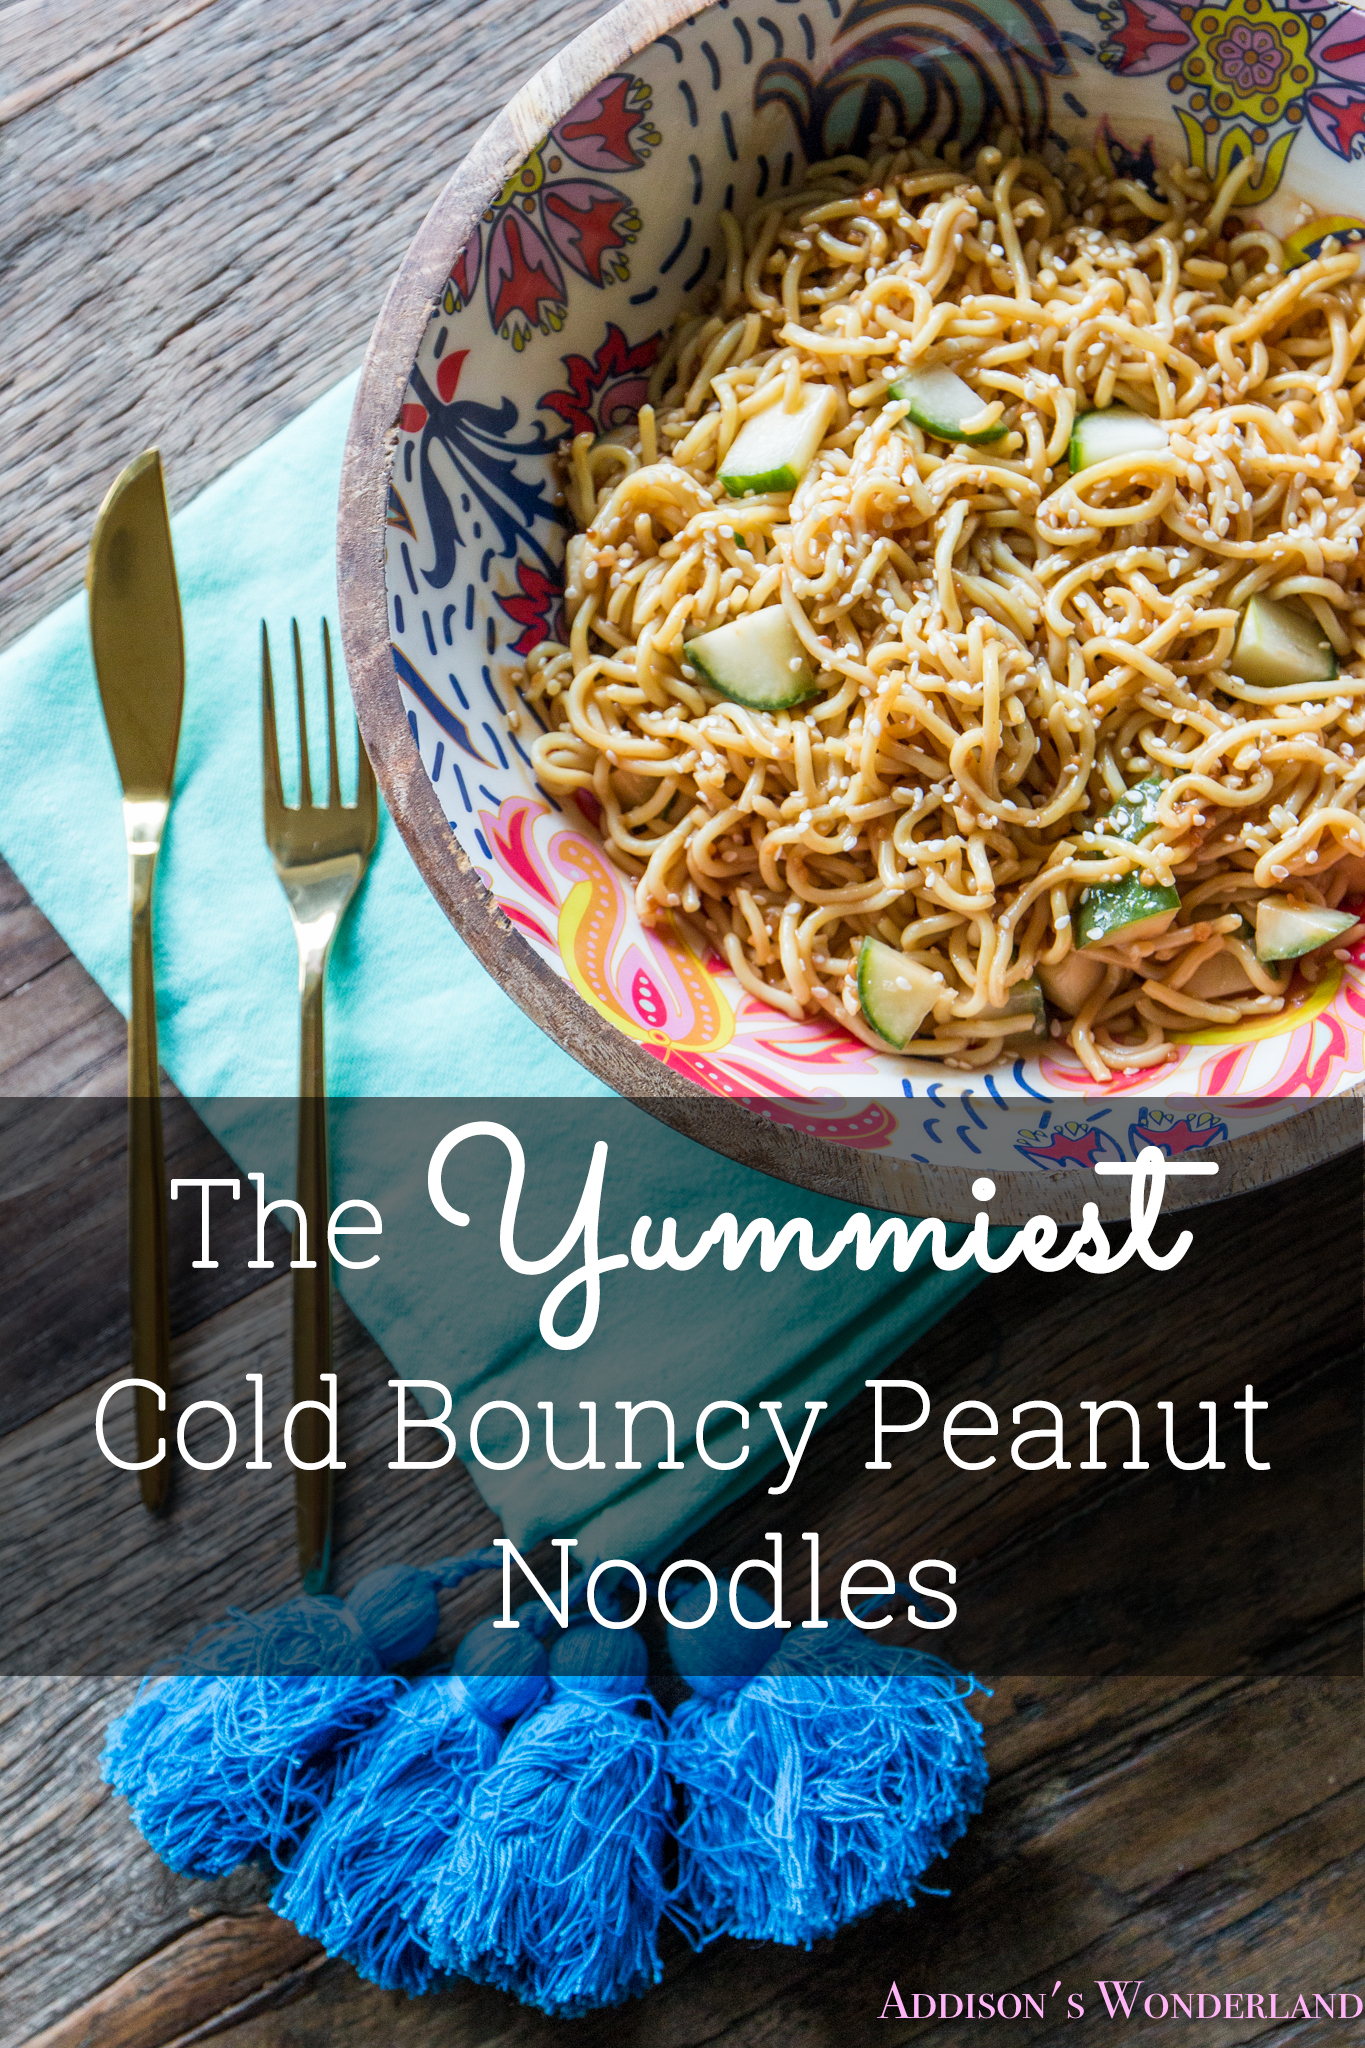 Mark's Recipe Debut- The Yummiest Cold Bouncy Peanut Noodles…